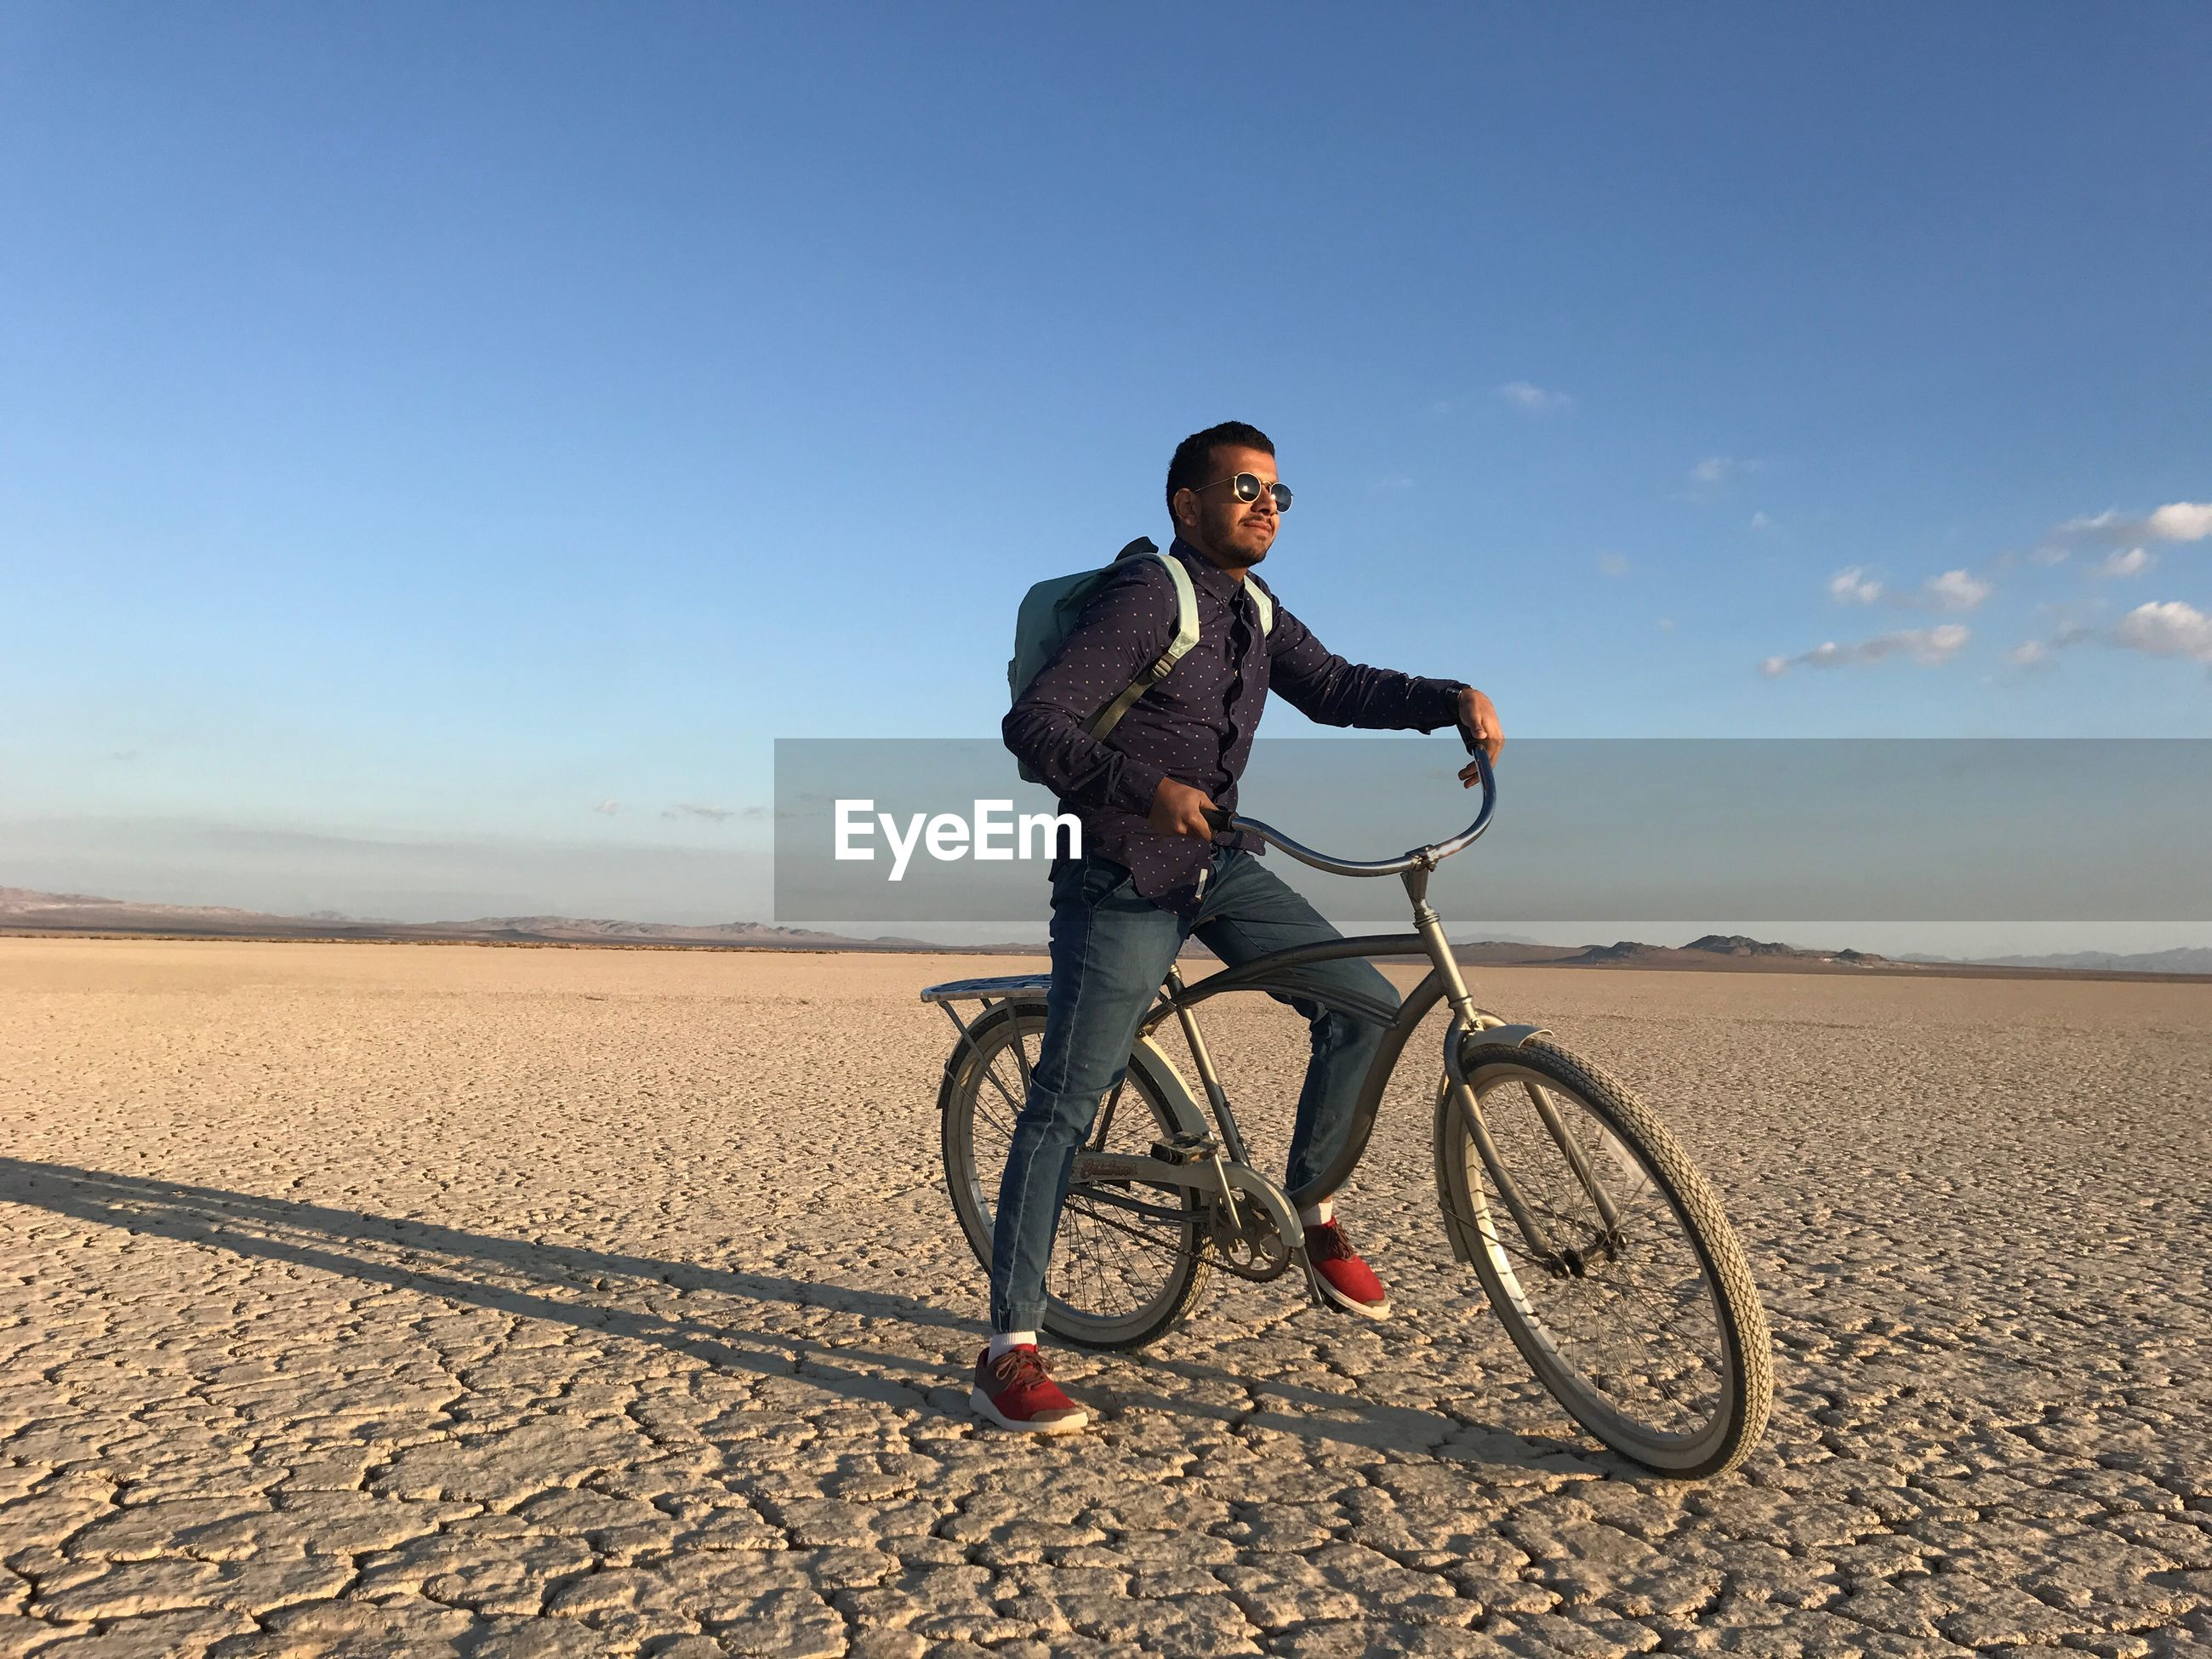 Full length of man with bicycle on landscape against sky